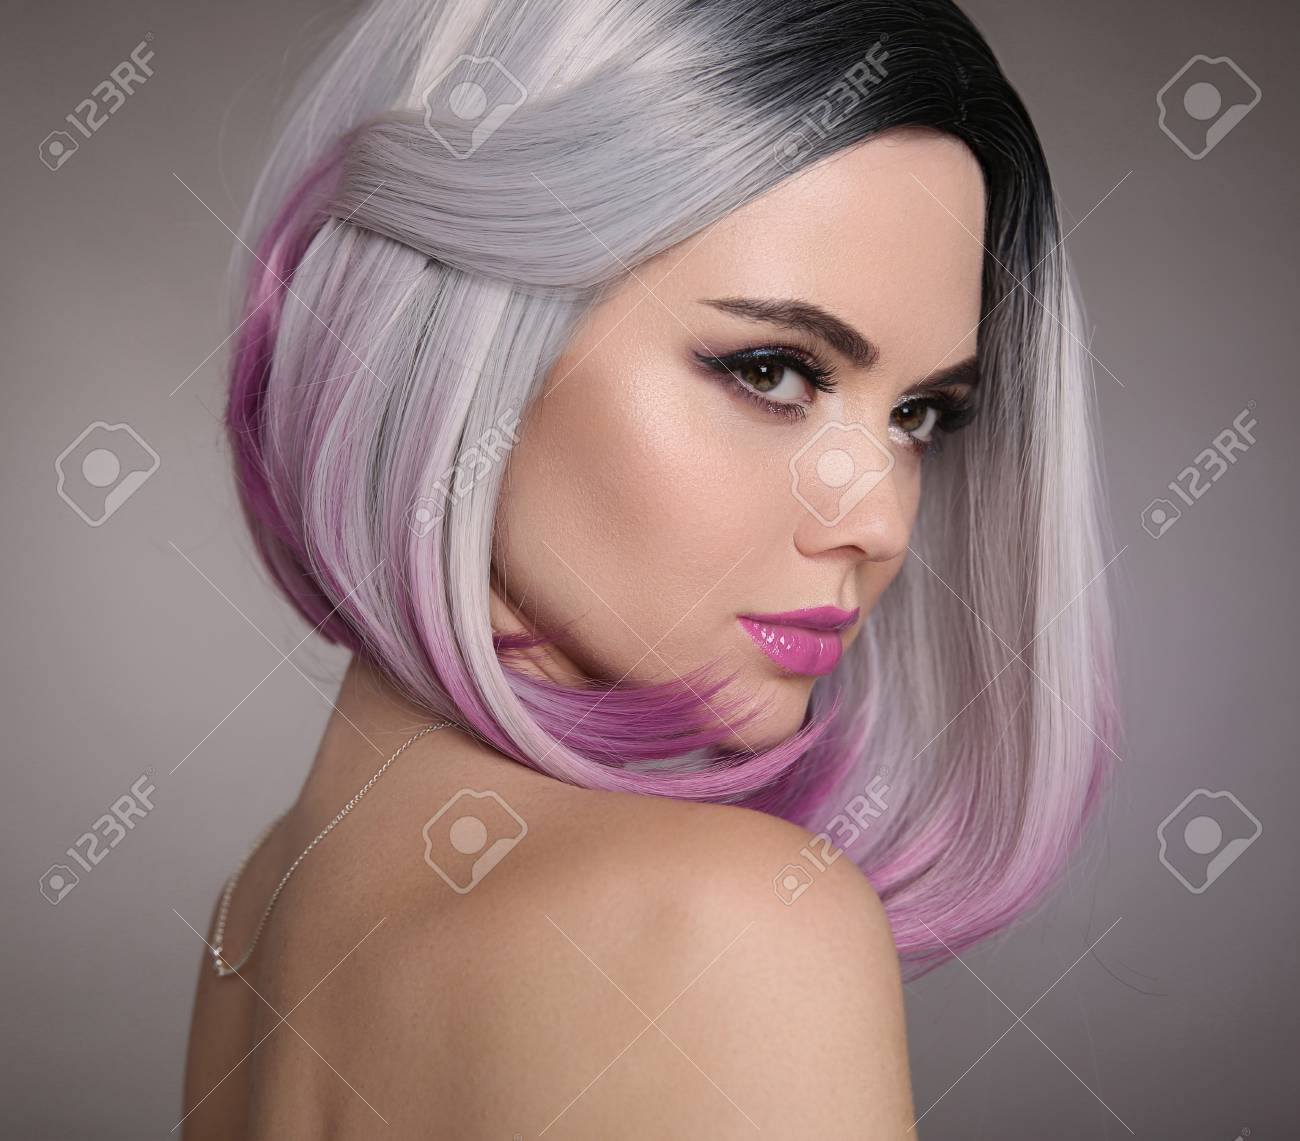 Ombre Bob Short Hairstyle Beautiful Hair Coloring Woman Fashion Stock Photo Picture And Royalty Free Image Image 97353910